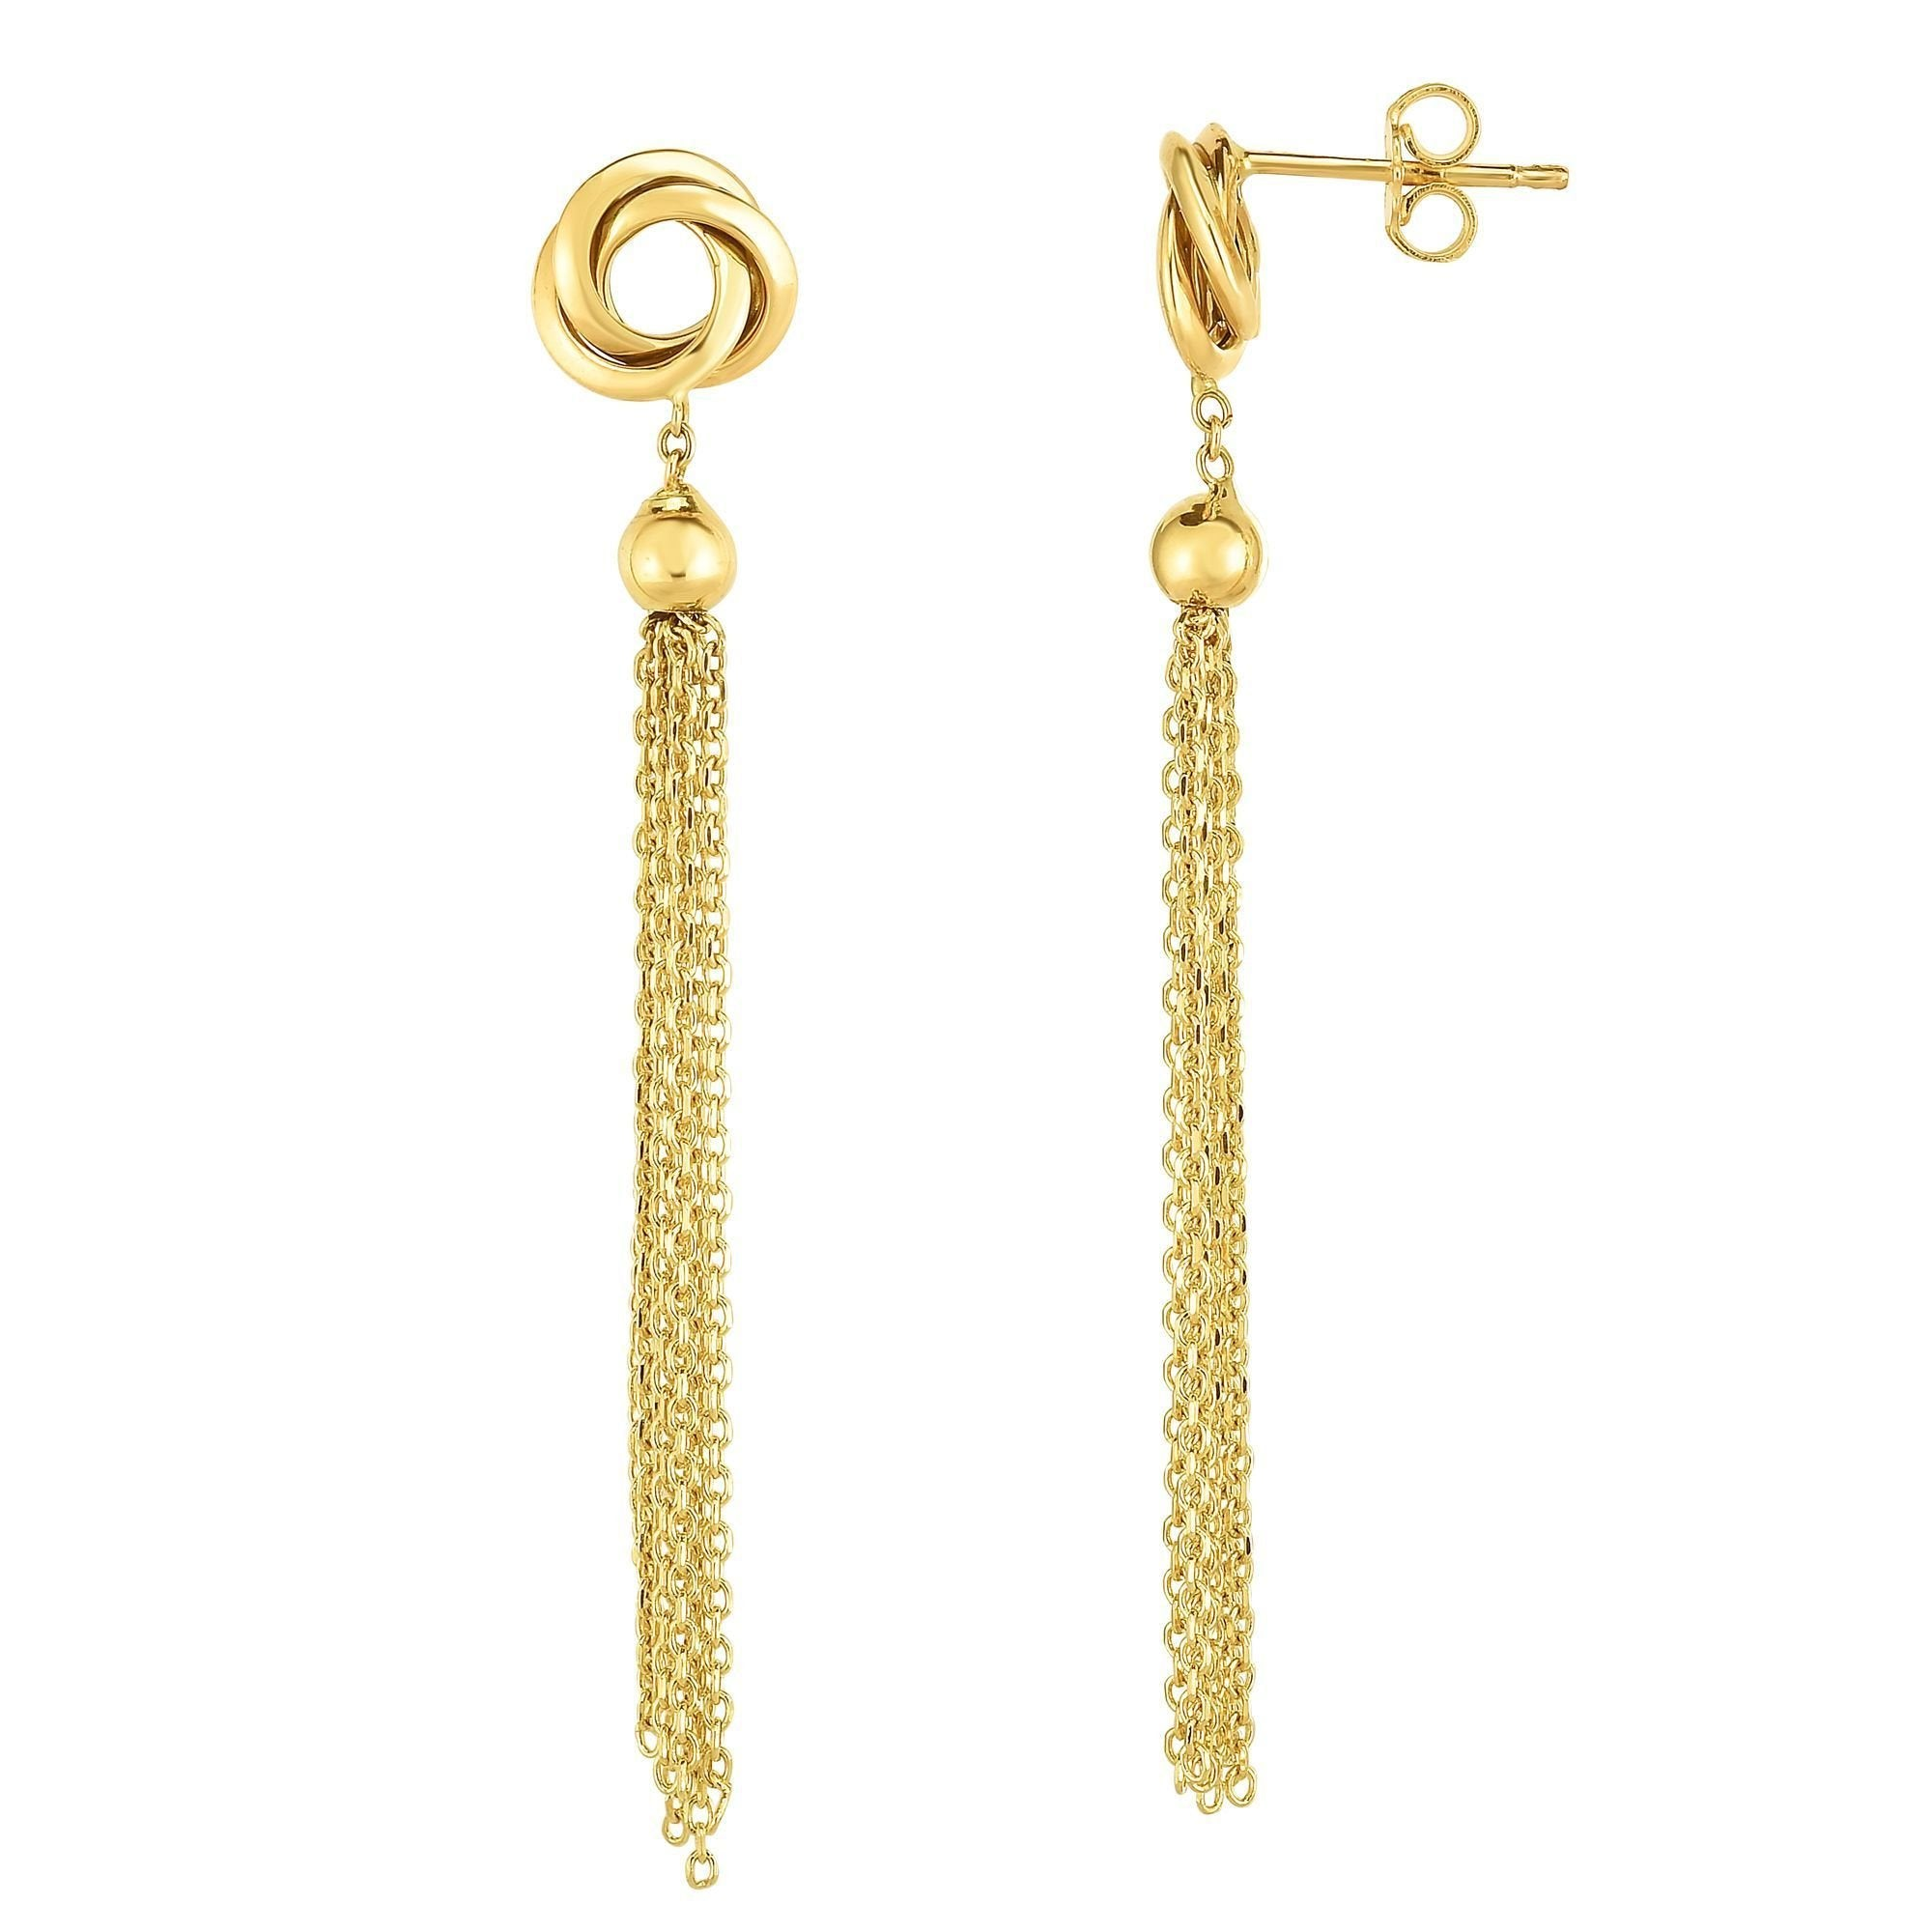 14k Yellow Gold Diamond Cut Cable Chain Tassel Love Knot Pendant Necklace and Dangle Earrings Set